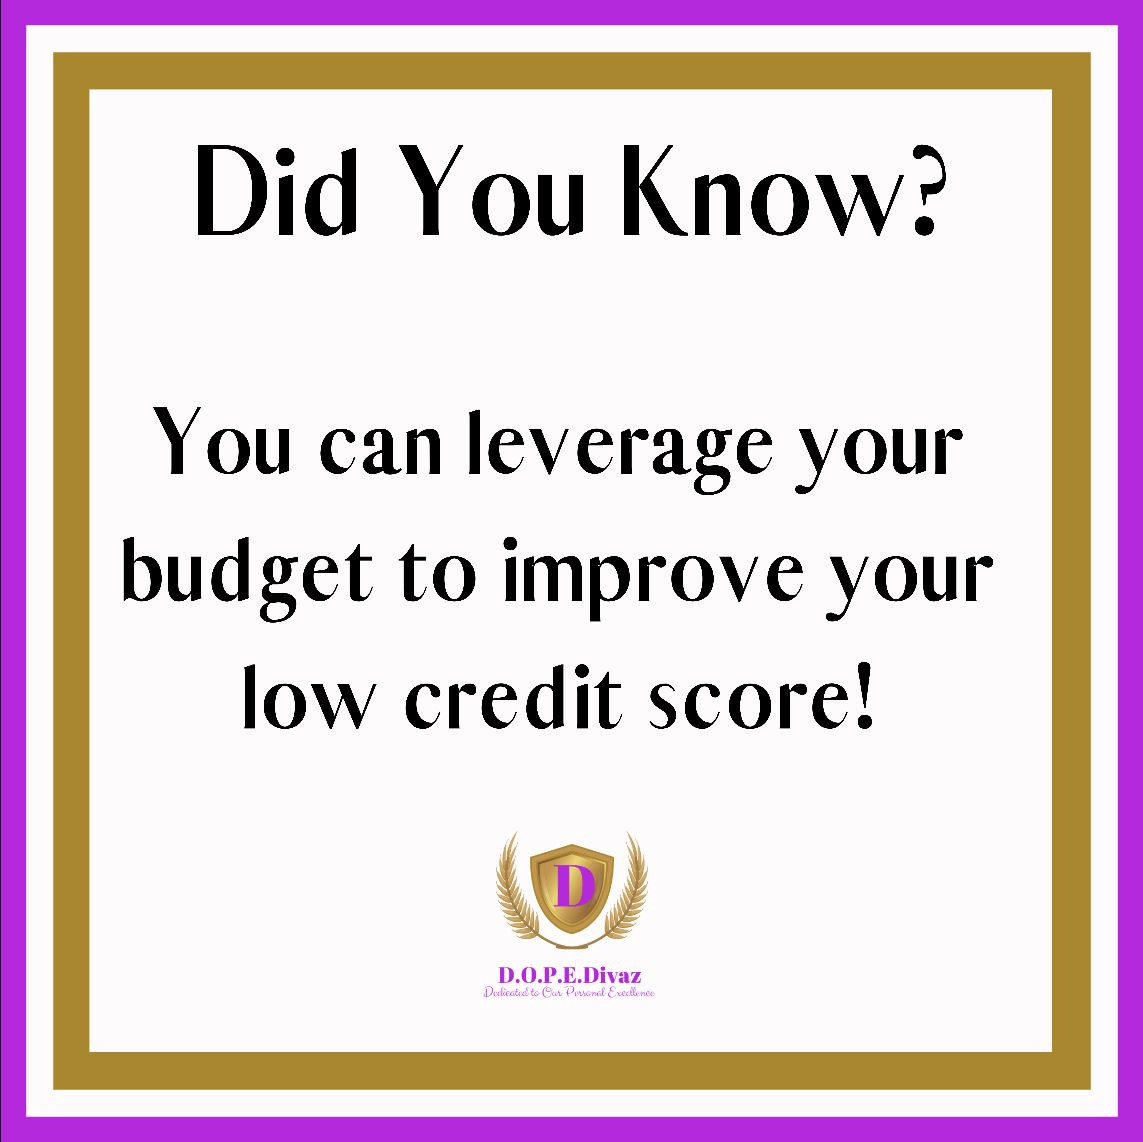 Why Not Have An App That Actually Helps You Improve Your Credit